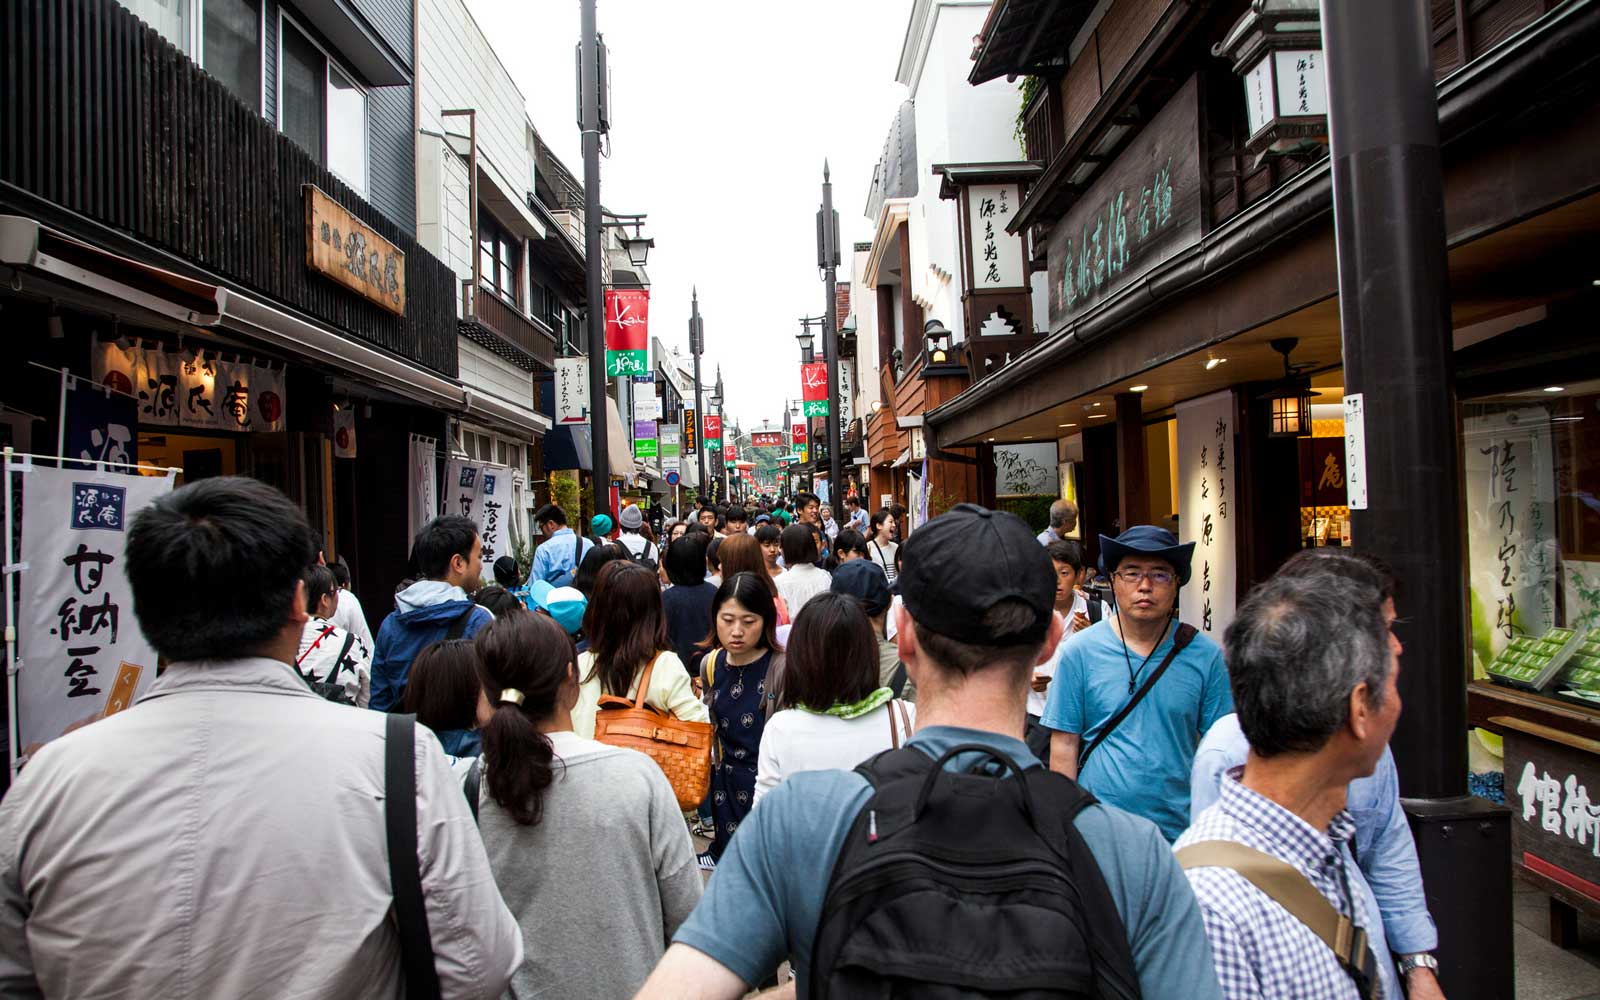 This City in Japan Is Asking Tourists to Stop Eating While They Walk